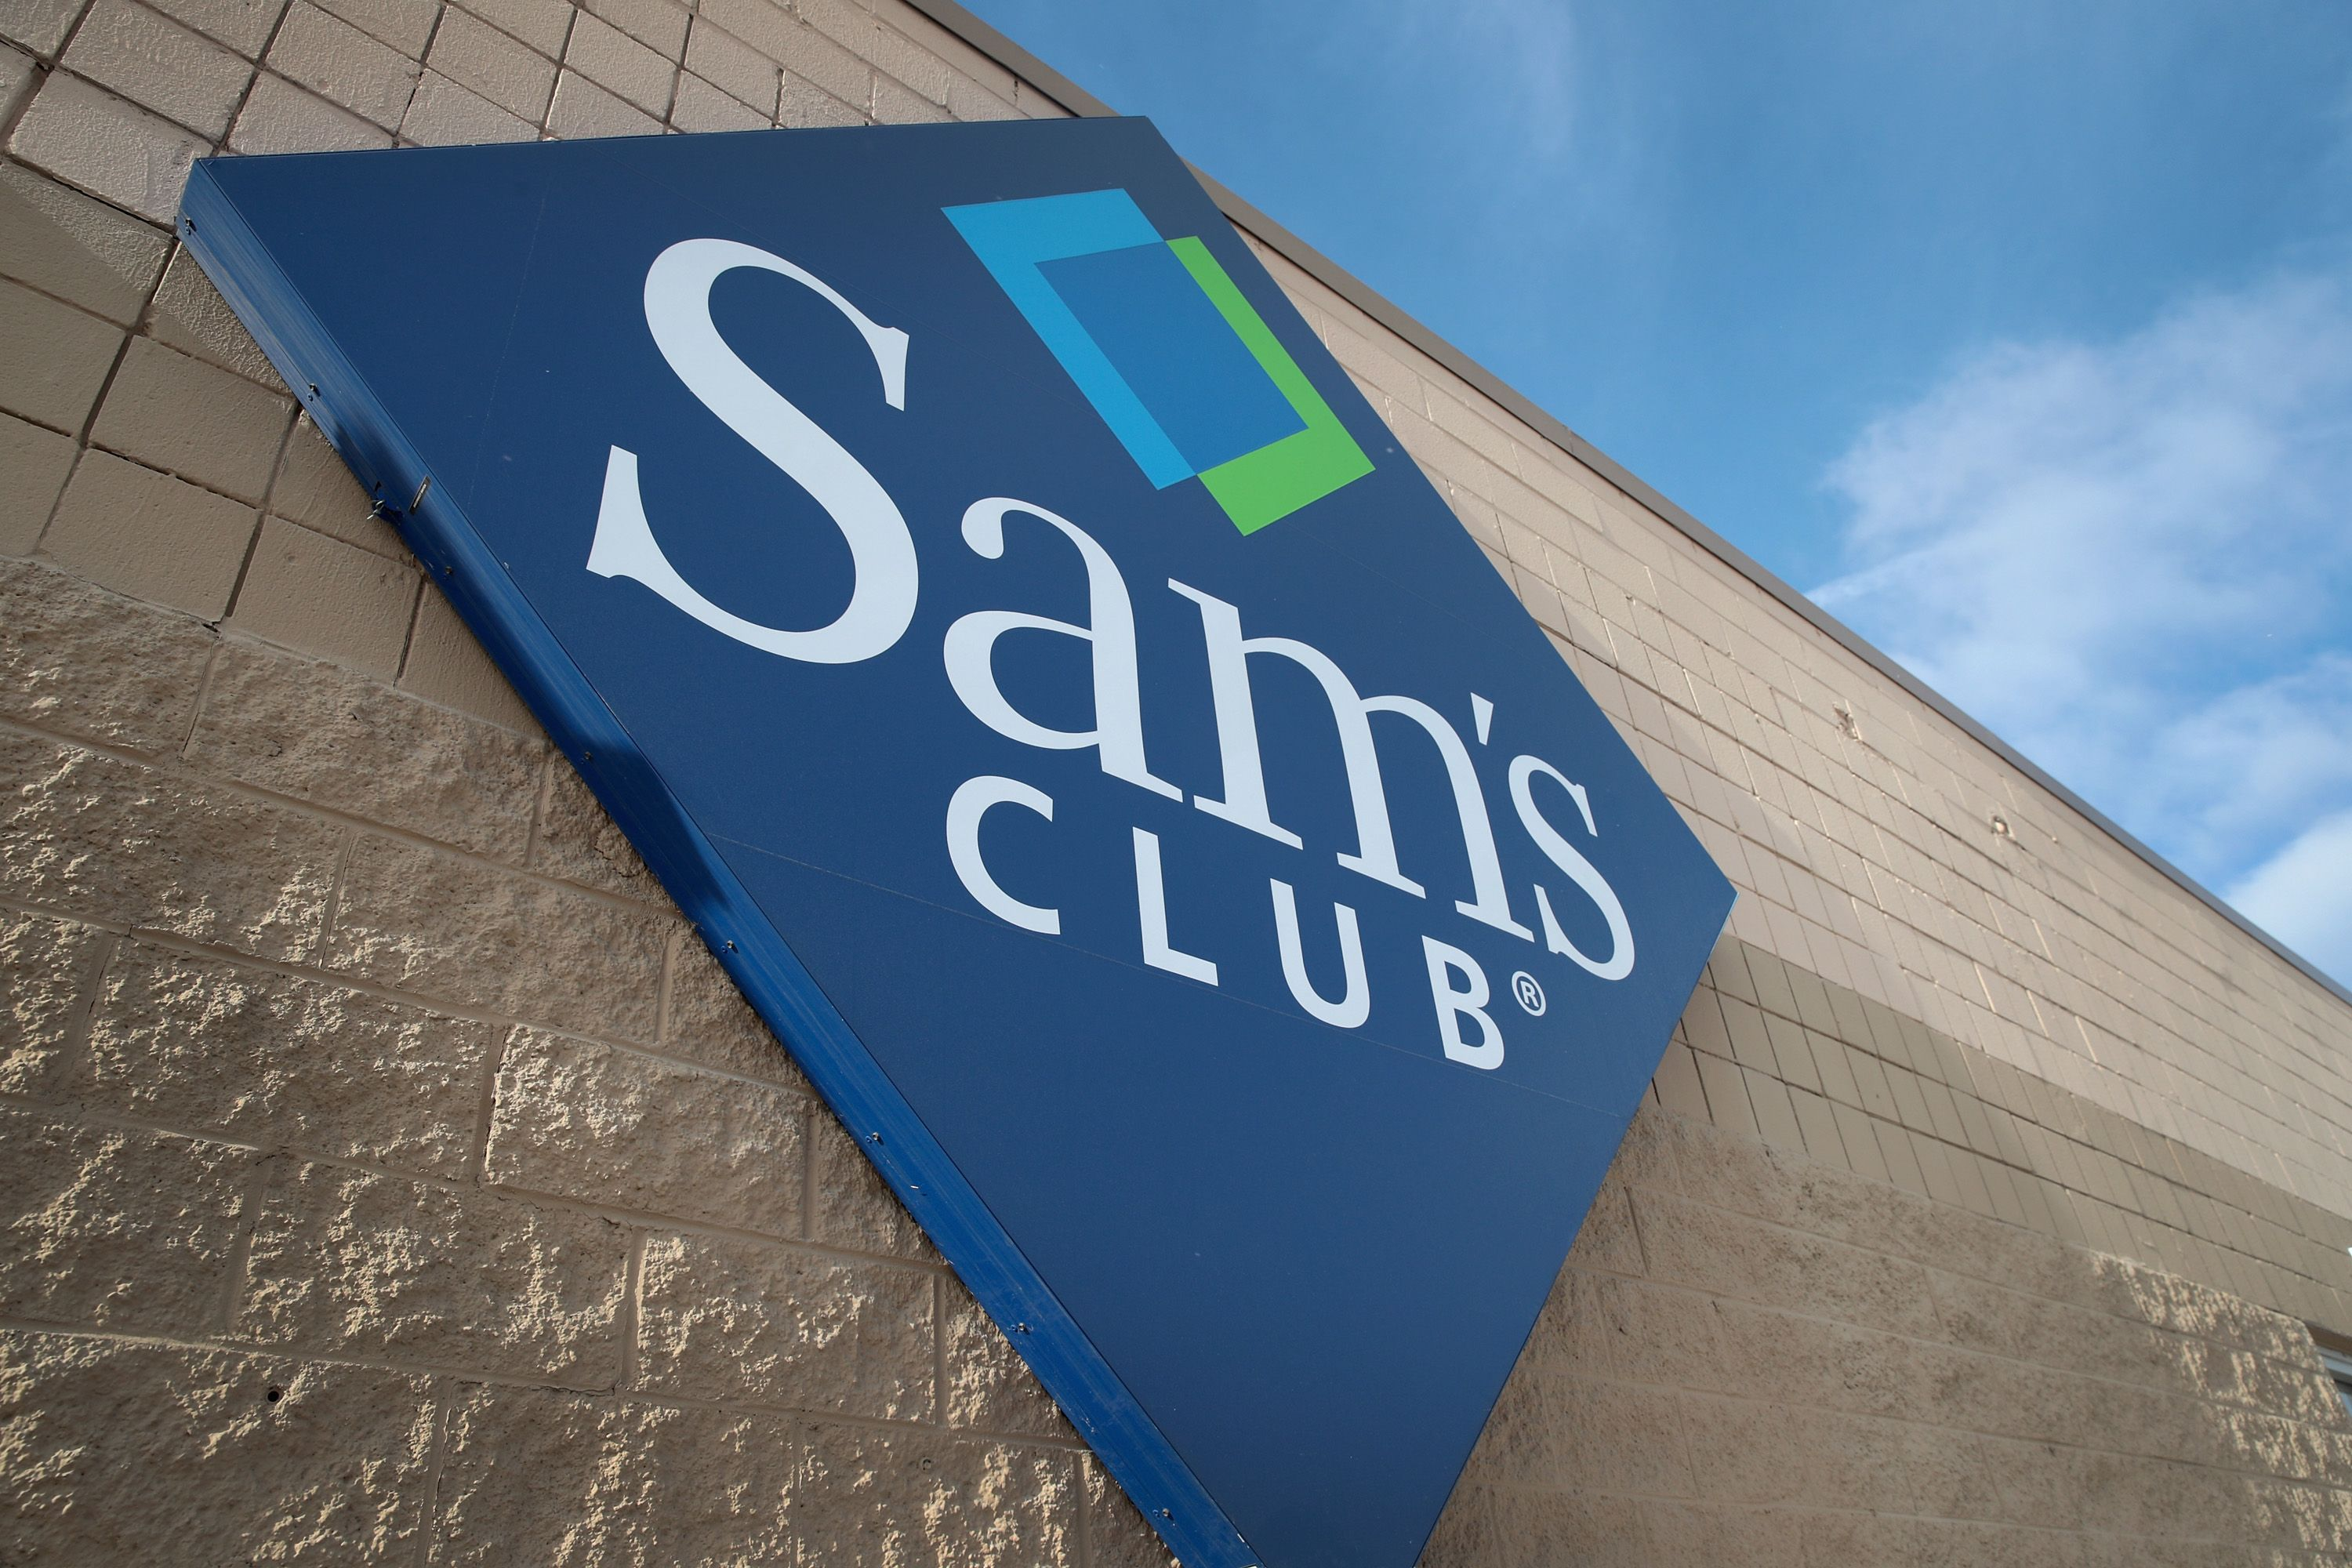 Sams Club Sunday Hours >> Sam S Club Memorial Day Hours 2019 Is Sam S Club Open On